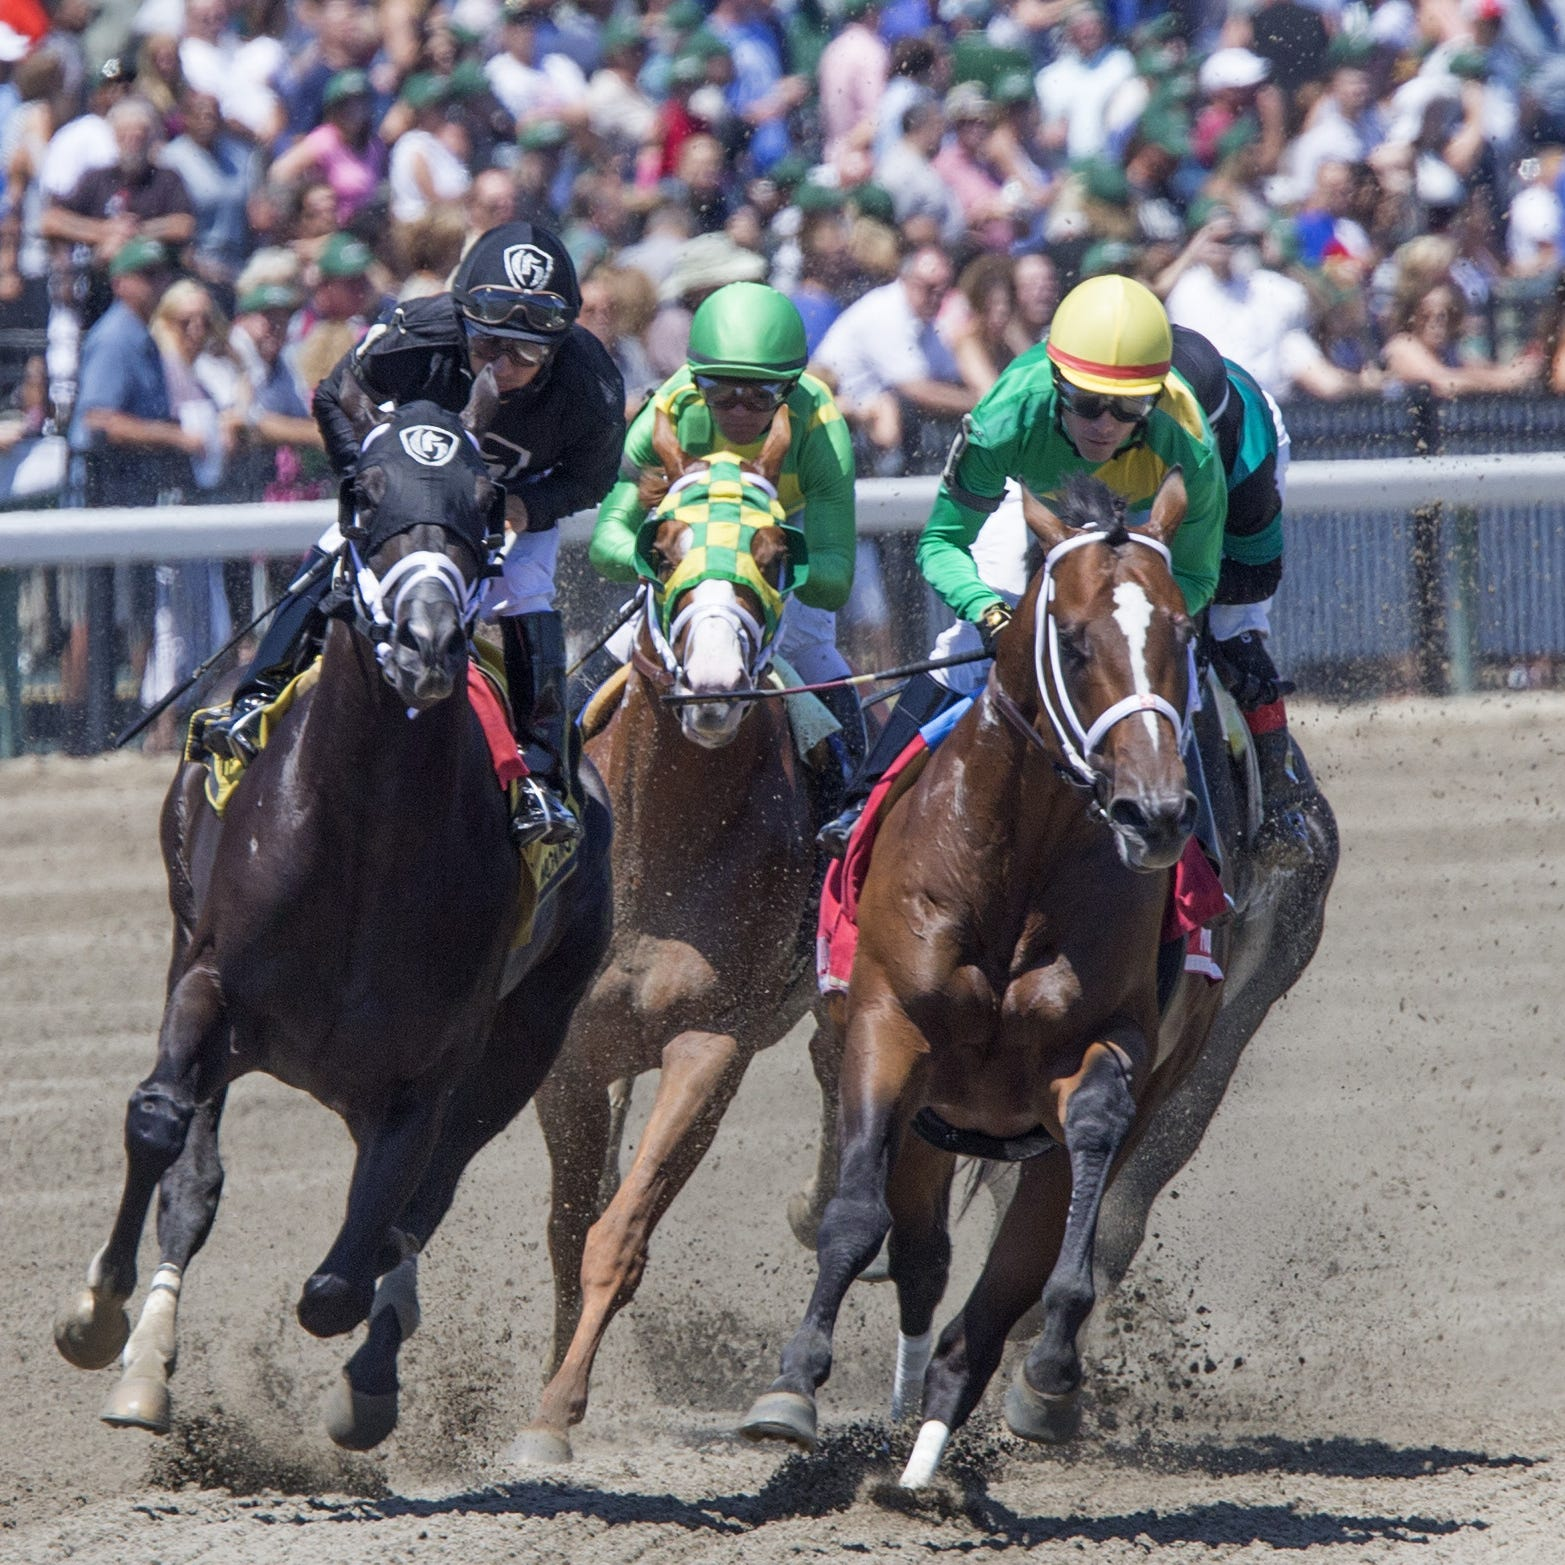 Monmouth Park 2019: Complete guide to opening day on Kentucky Derby Saturday